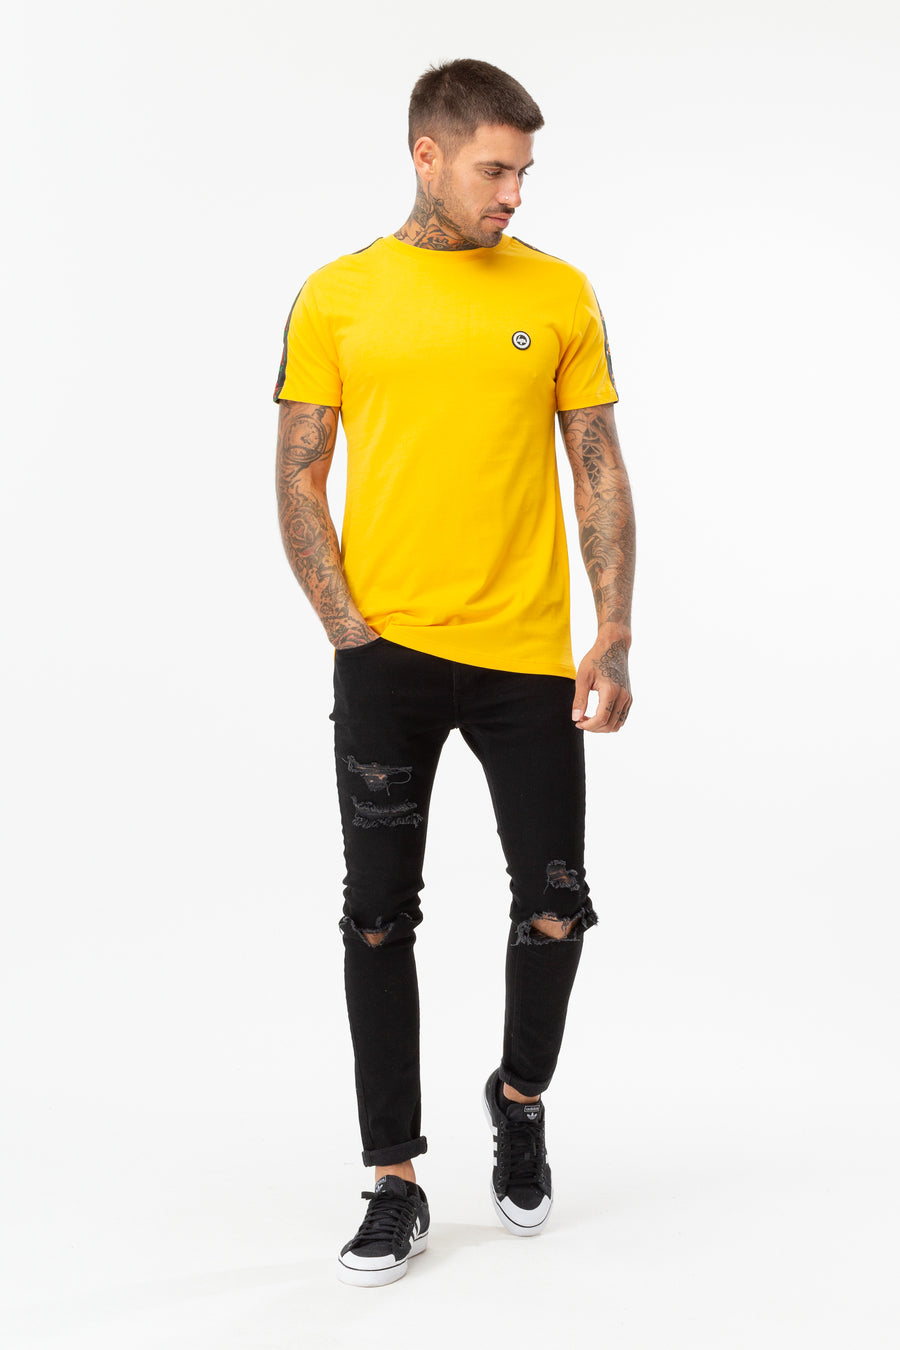 HYPE YELLOW SPANISH FLORAL BACK MEN'S TEE